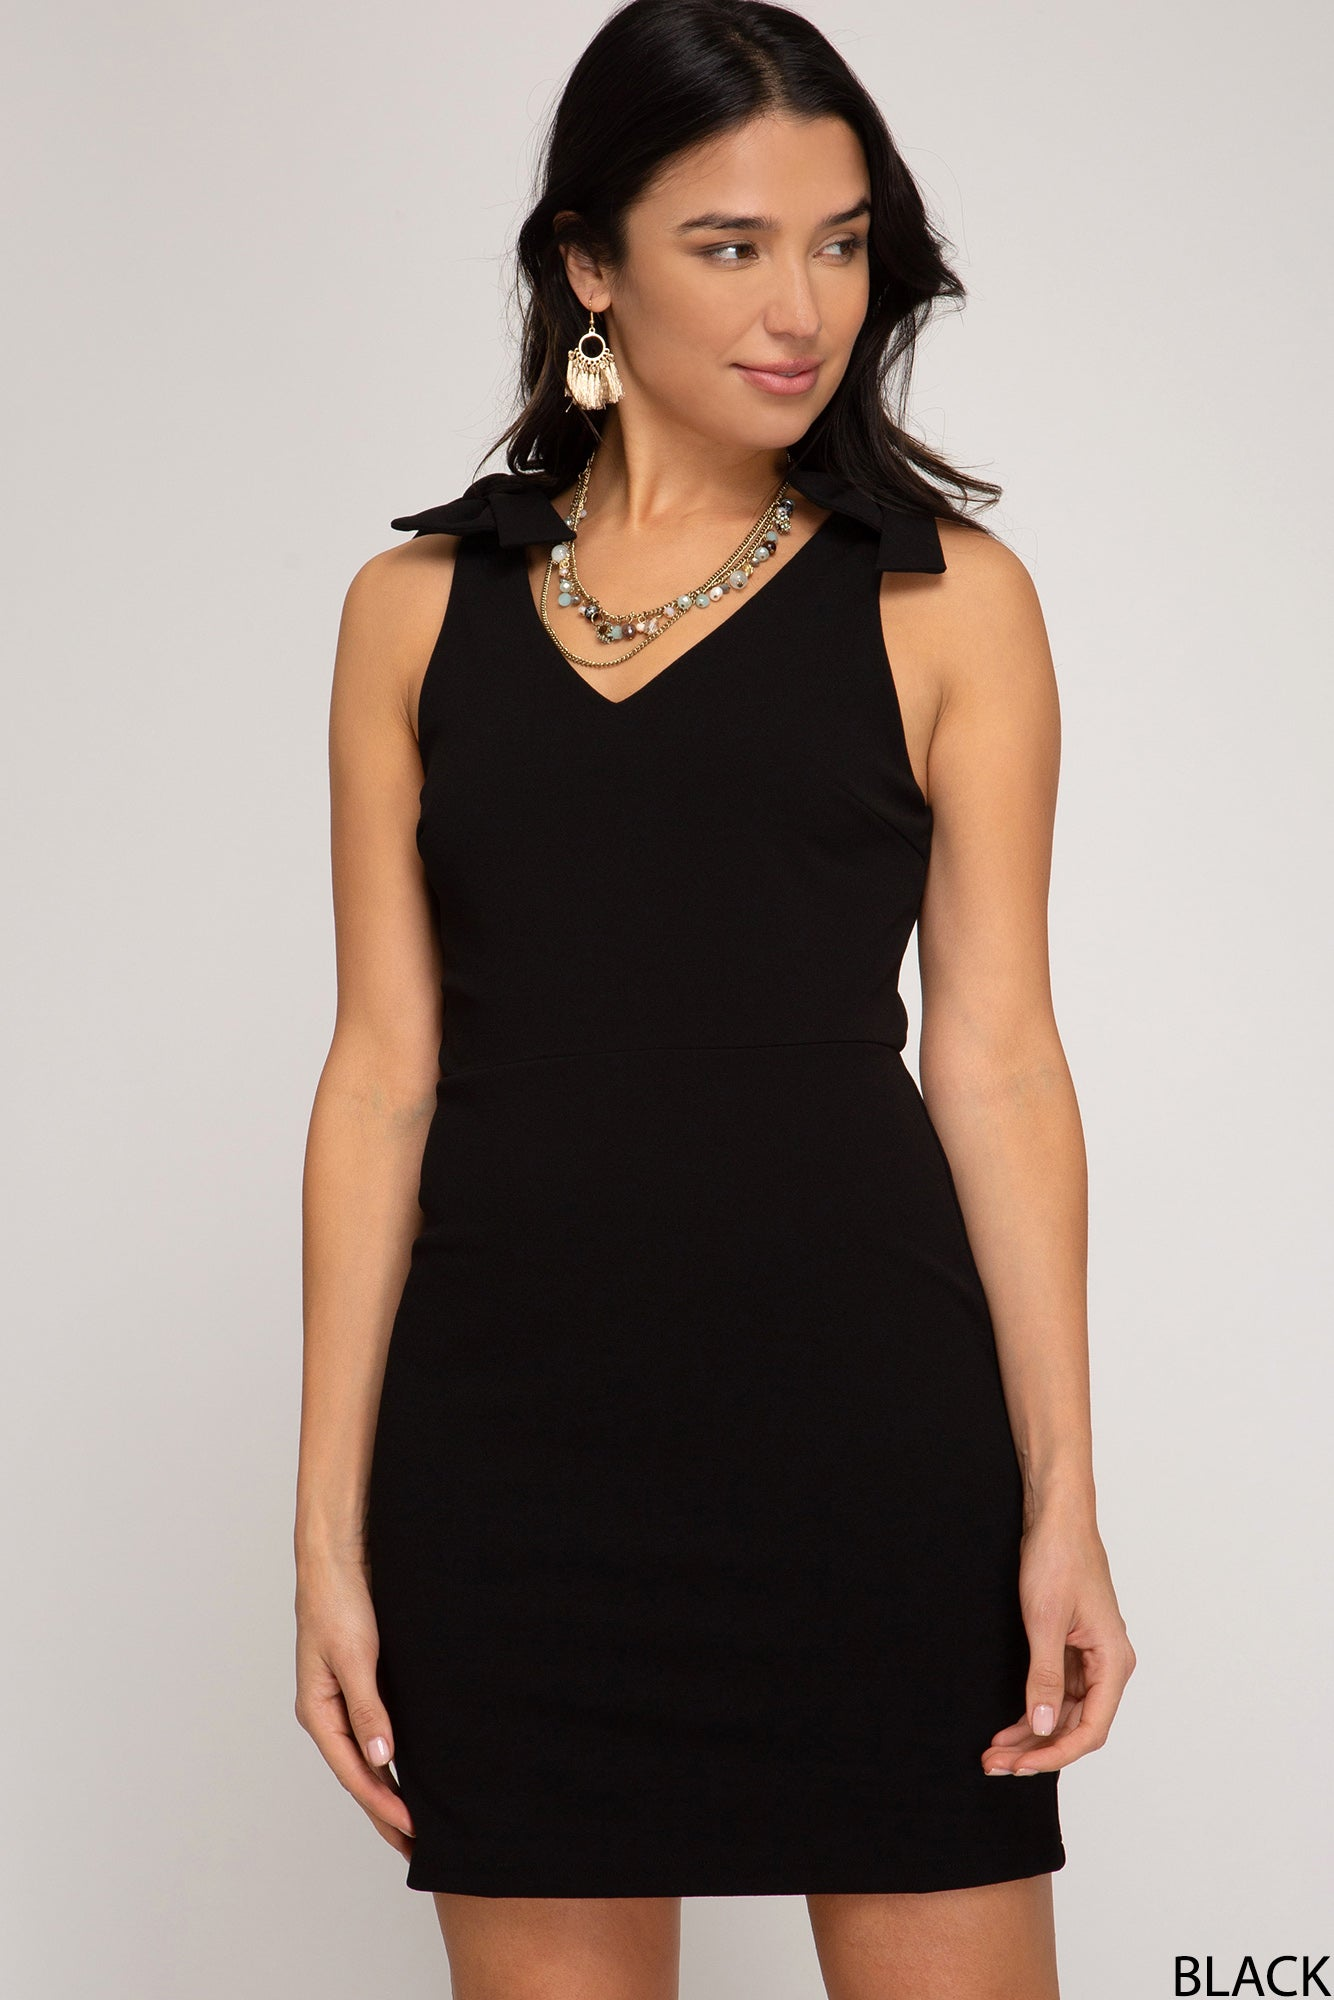 Classic Fitted Sheath Style Dress with Shoulder Tie in Black